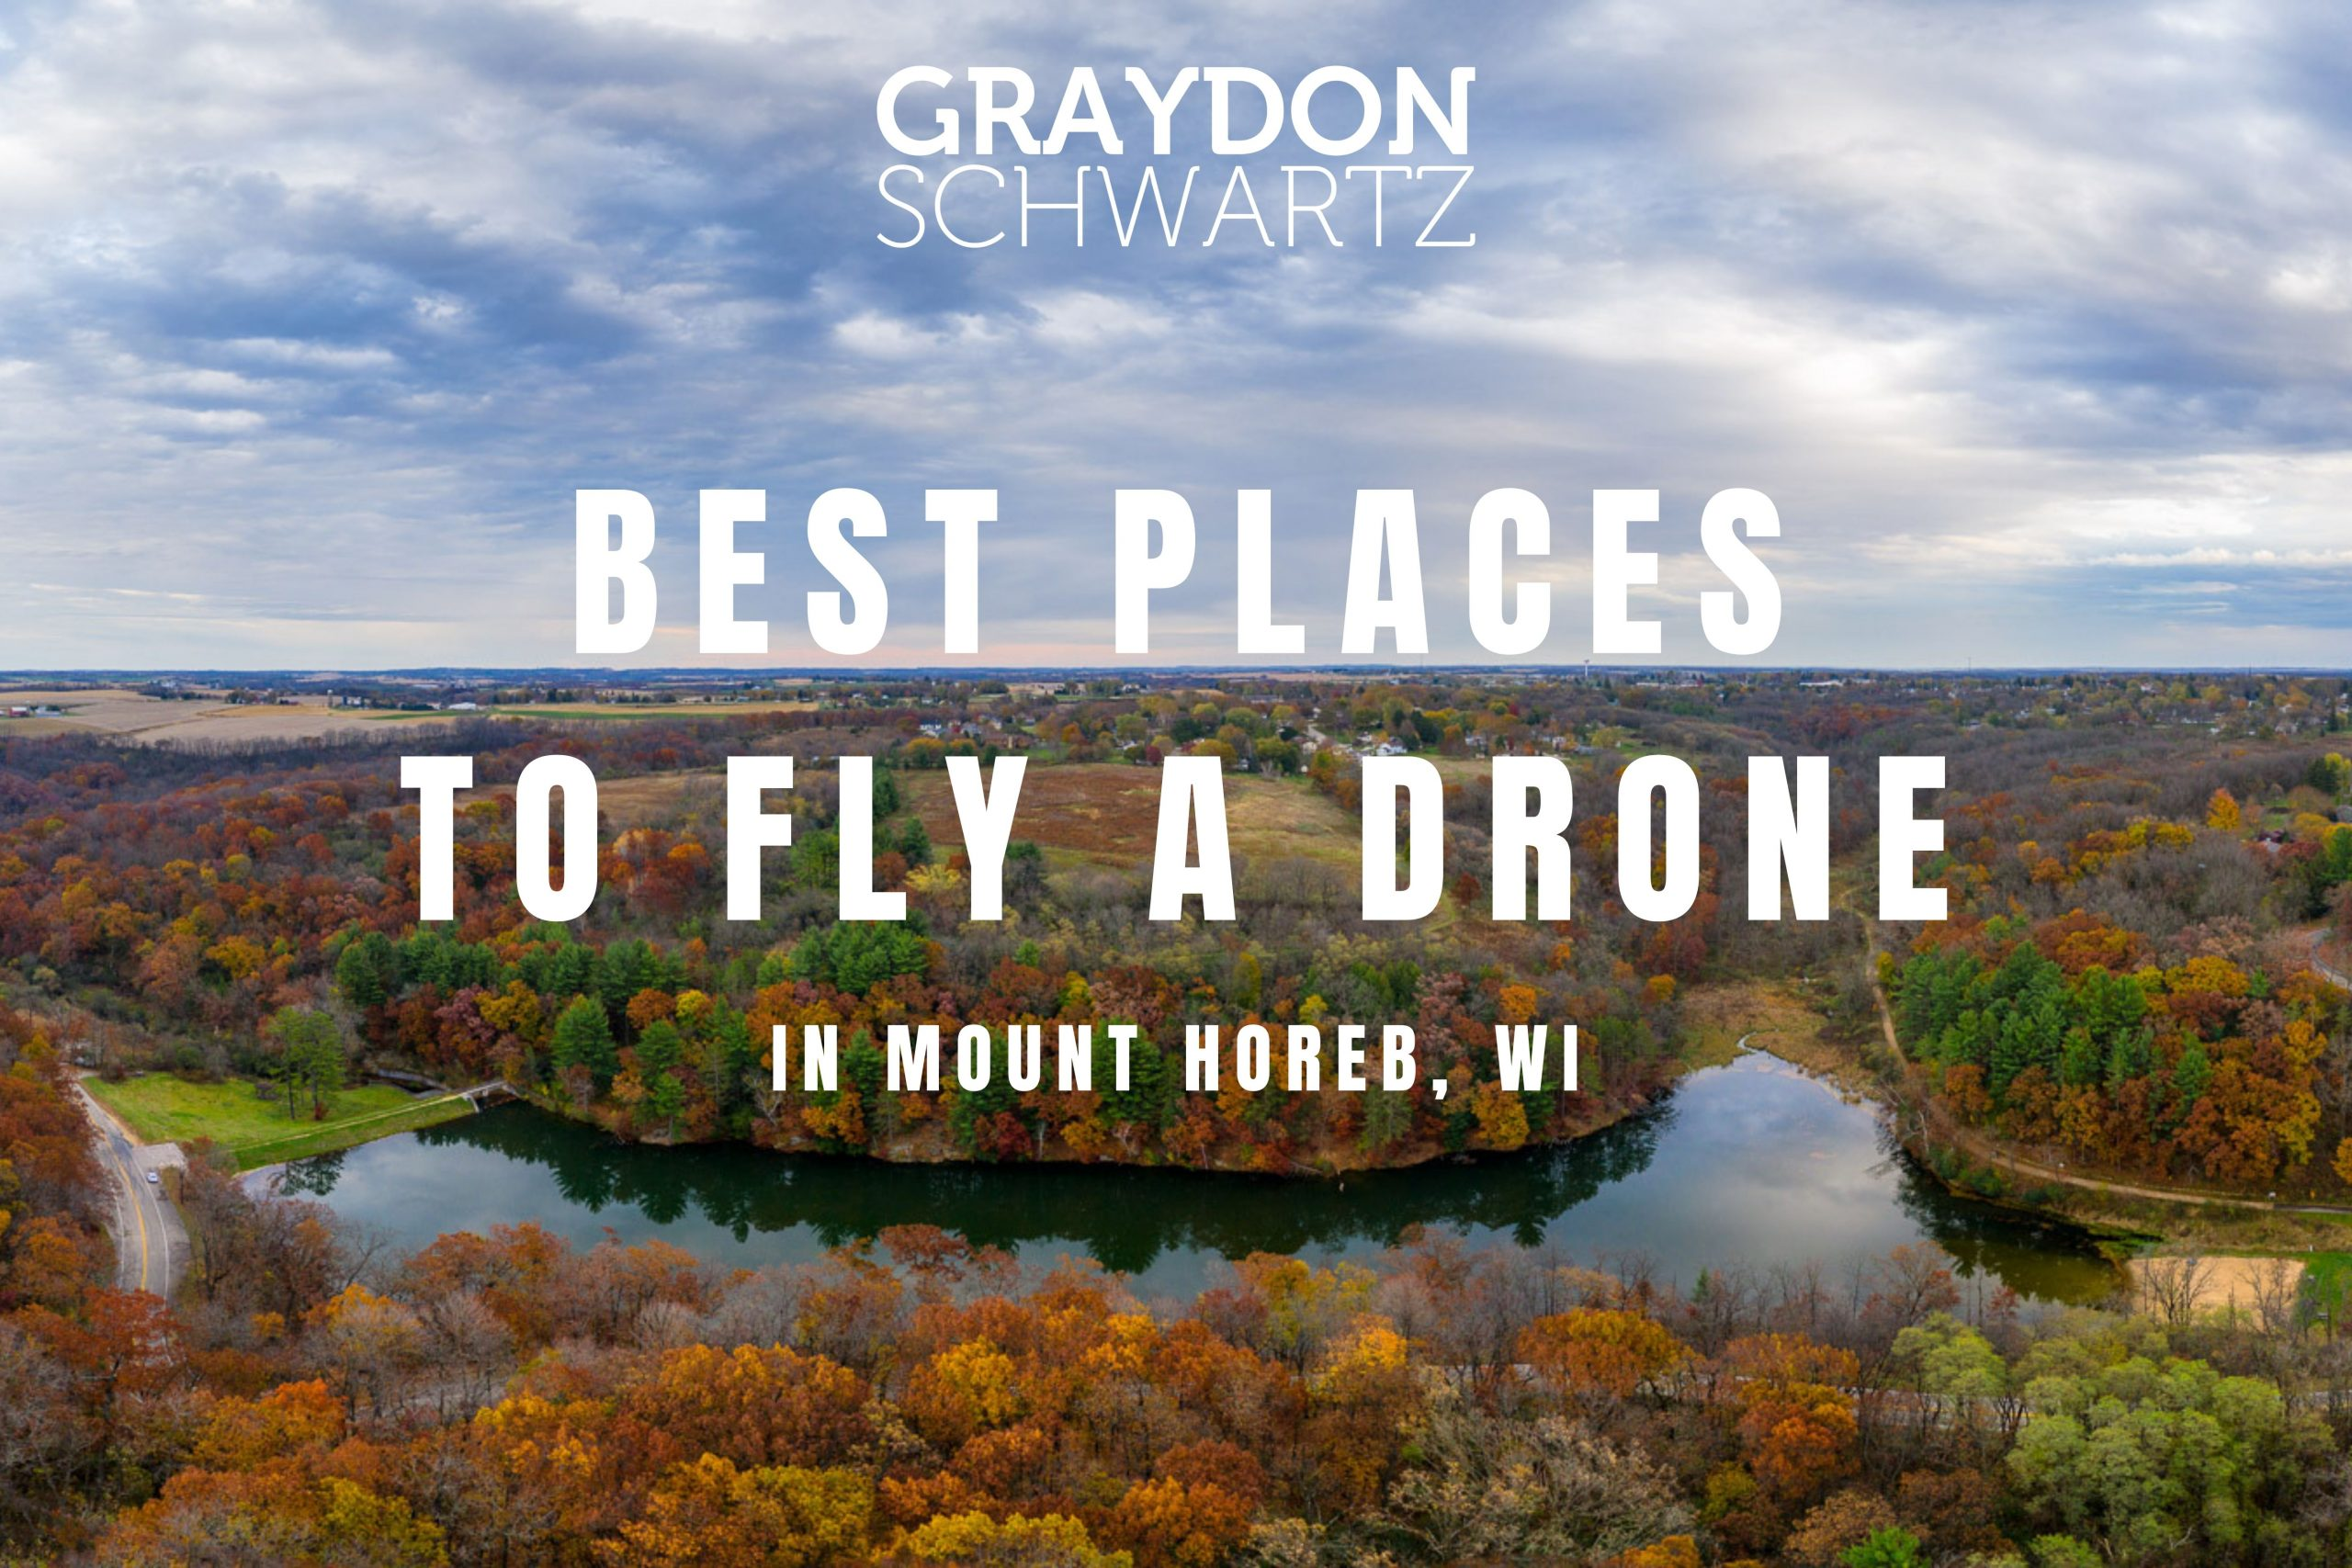 the 5 best places to fly a drone in mount horeb wisconsin scaled   graydonschwartz.com